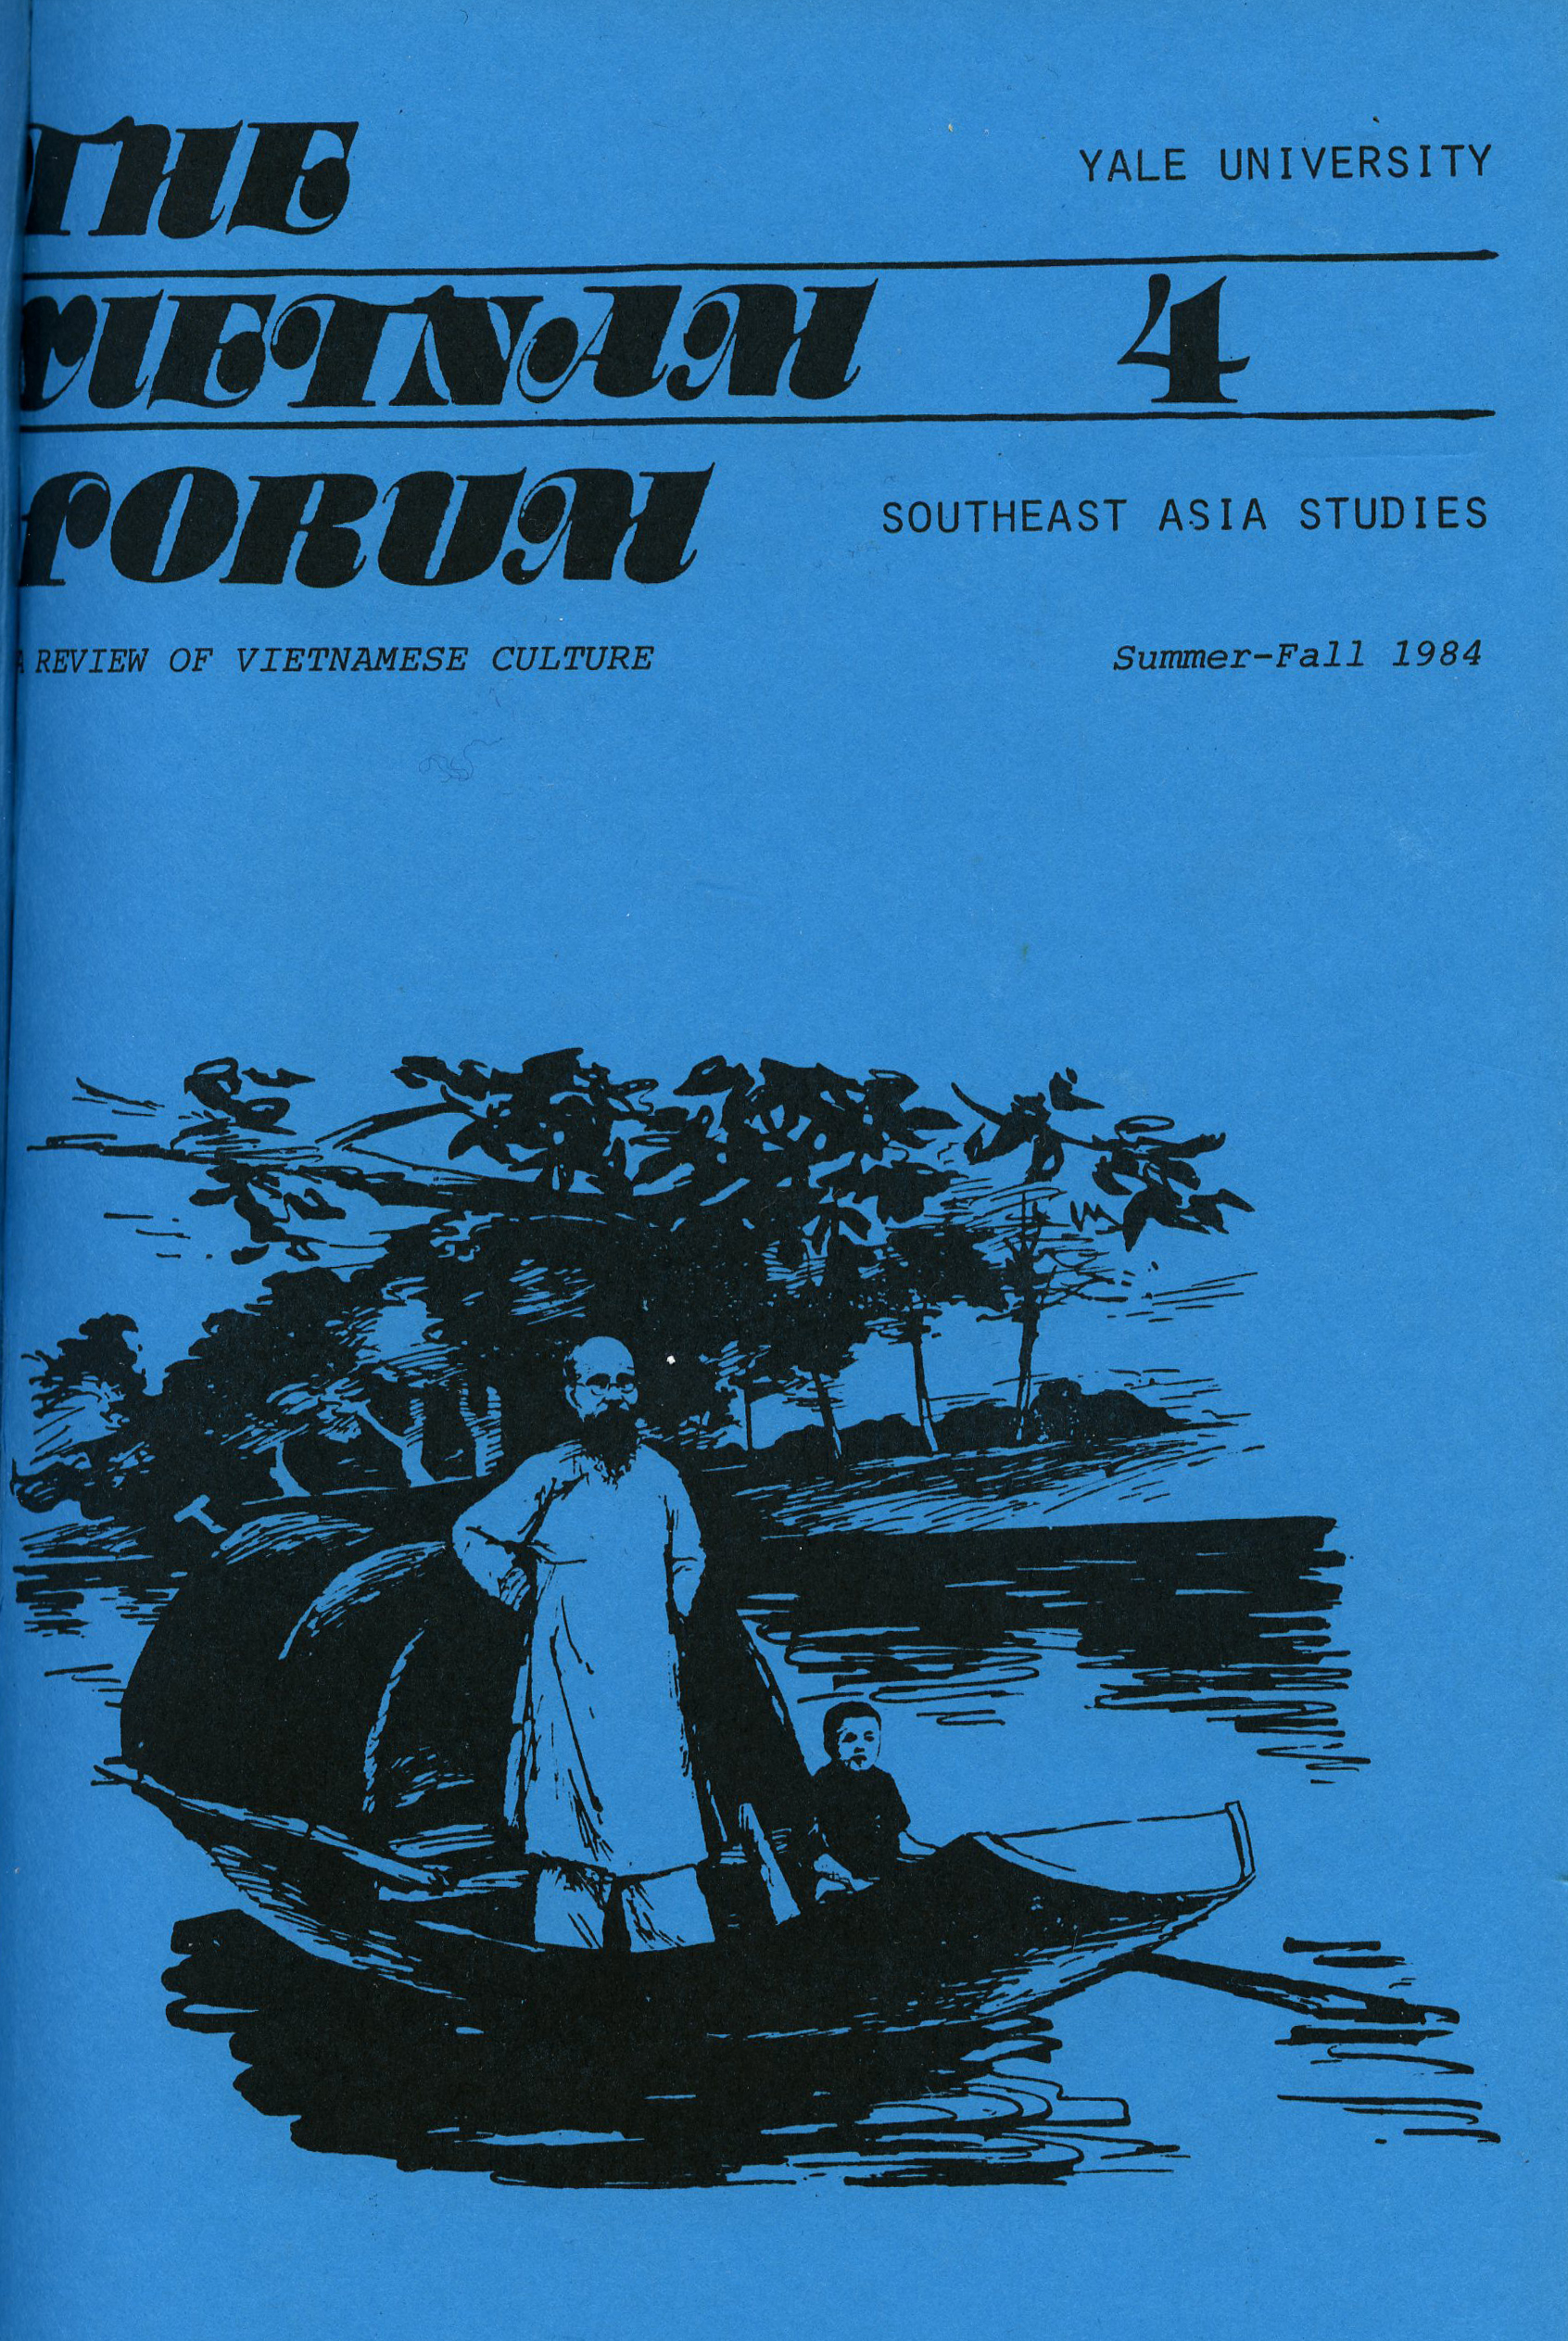 Cover of the Vietnam Forum 4